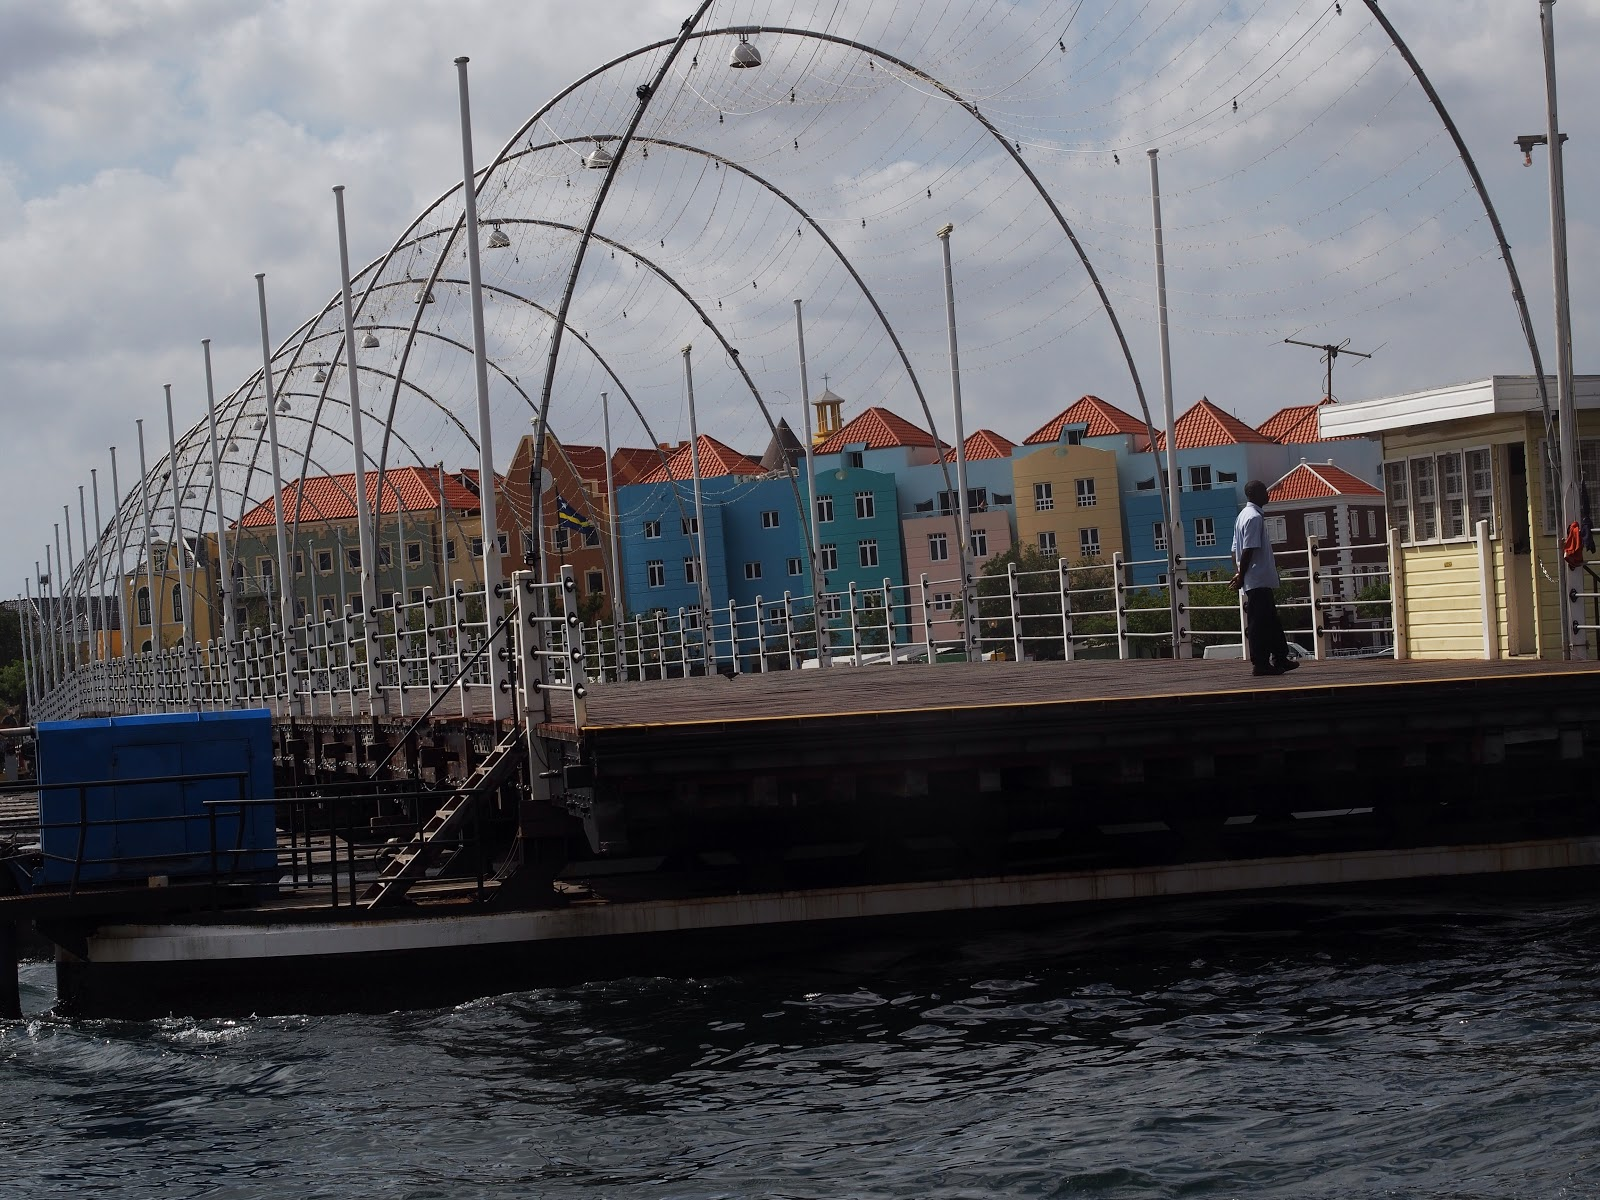 Queen Emma Floating Pontoon Bridge, #pontoonbridge #floatingbridge  #queenemmabridge #willemstad #curacao 2014